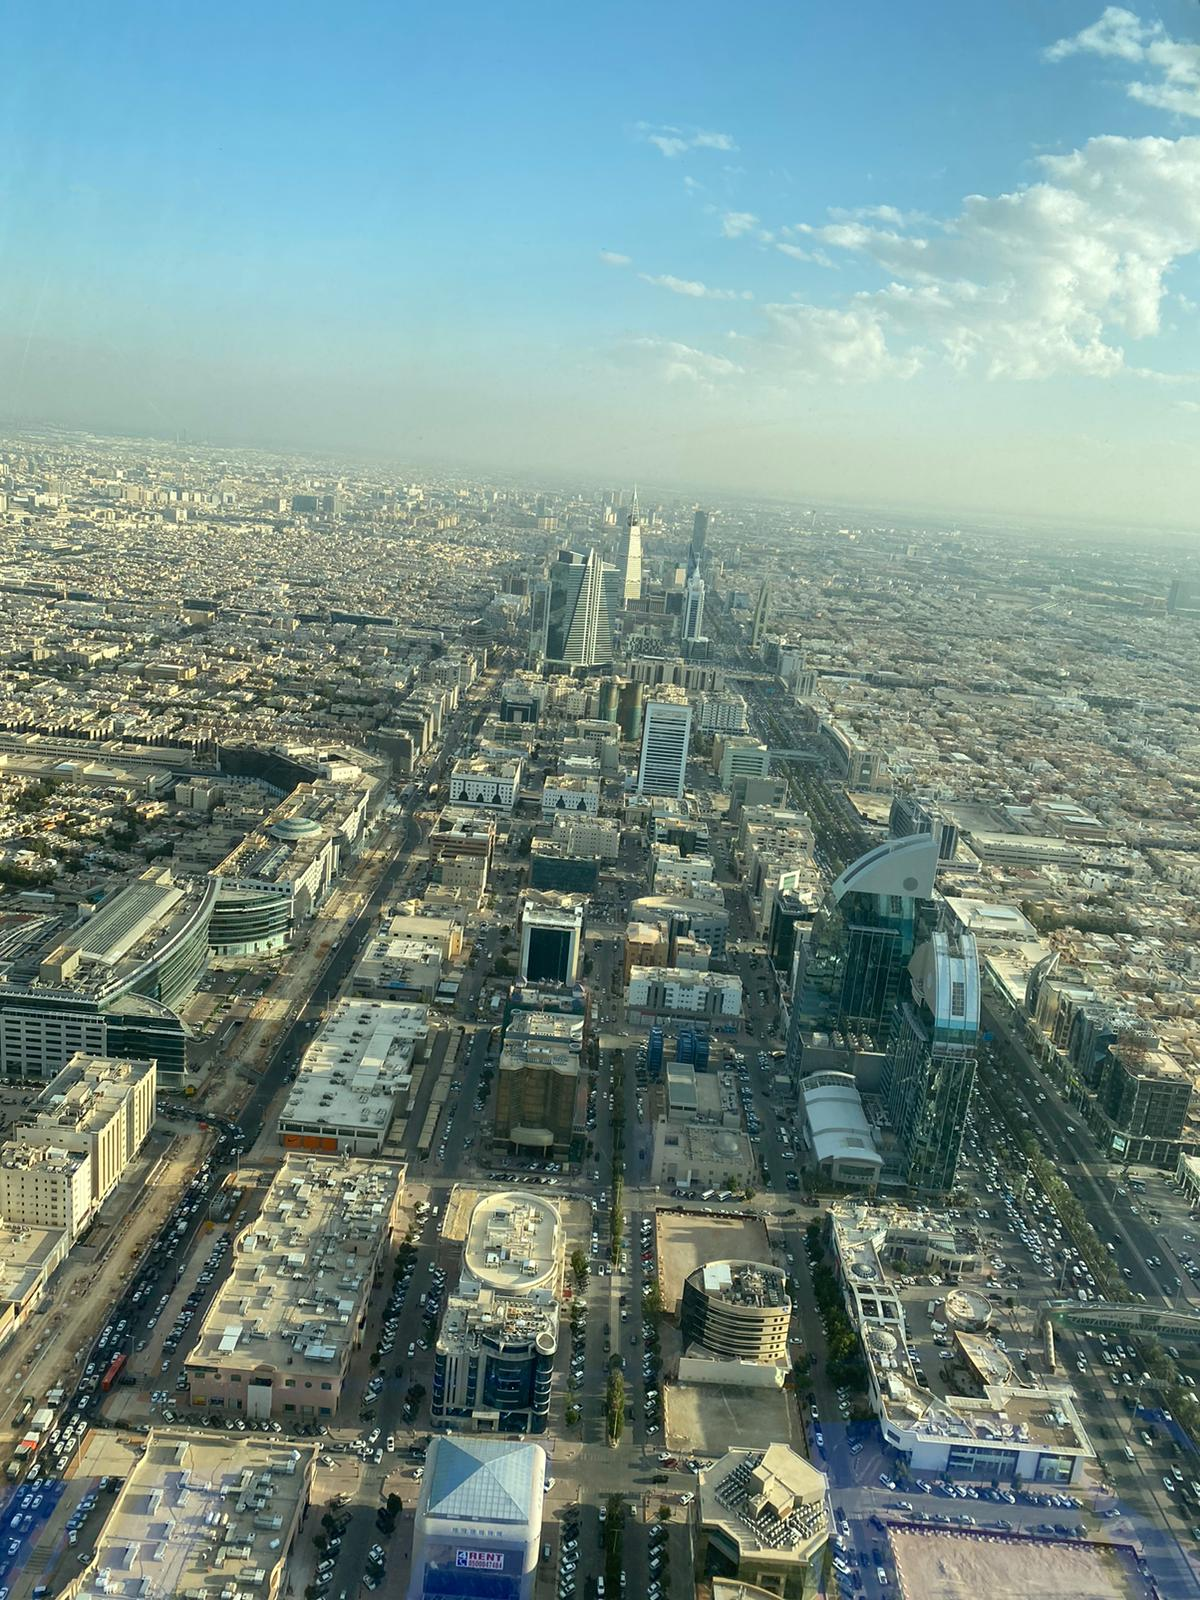 View across Riyadh from the top of a skyscrapper